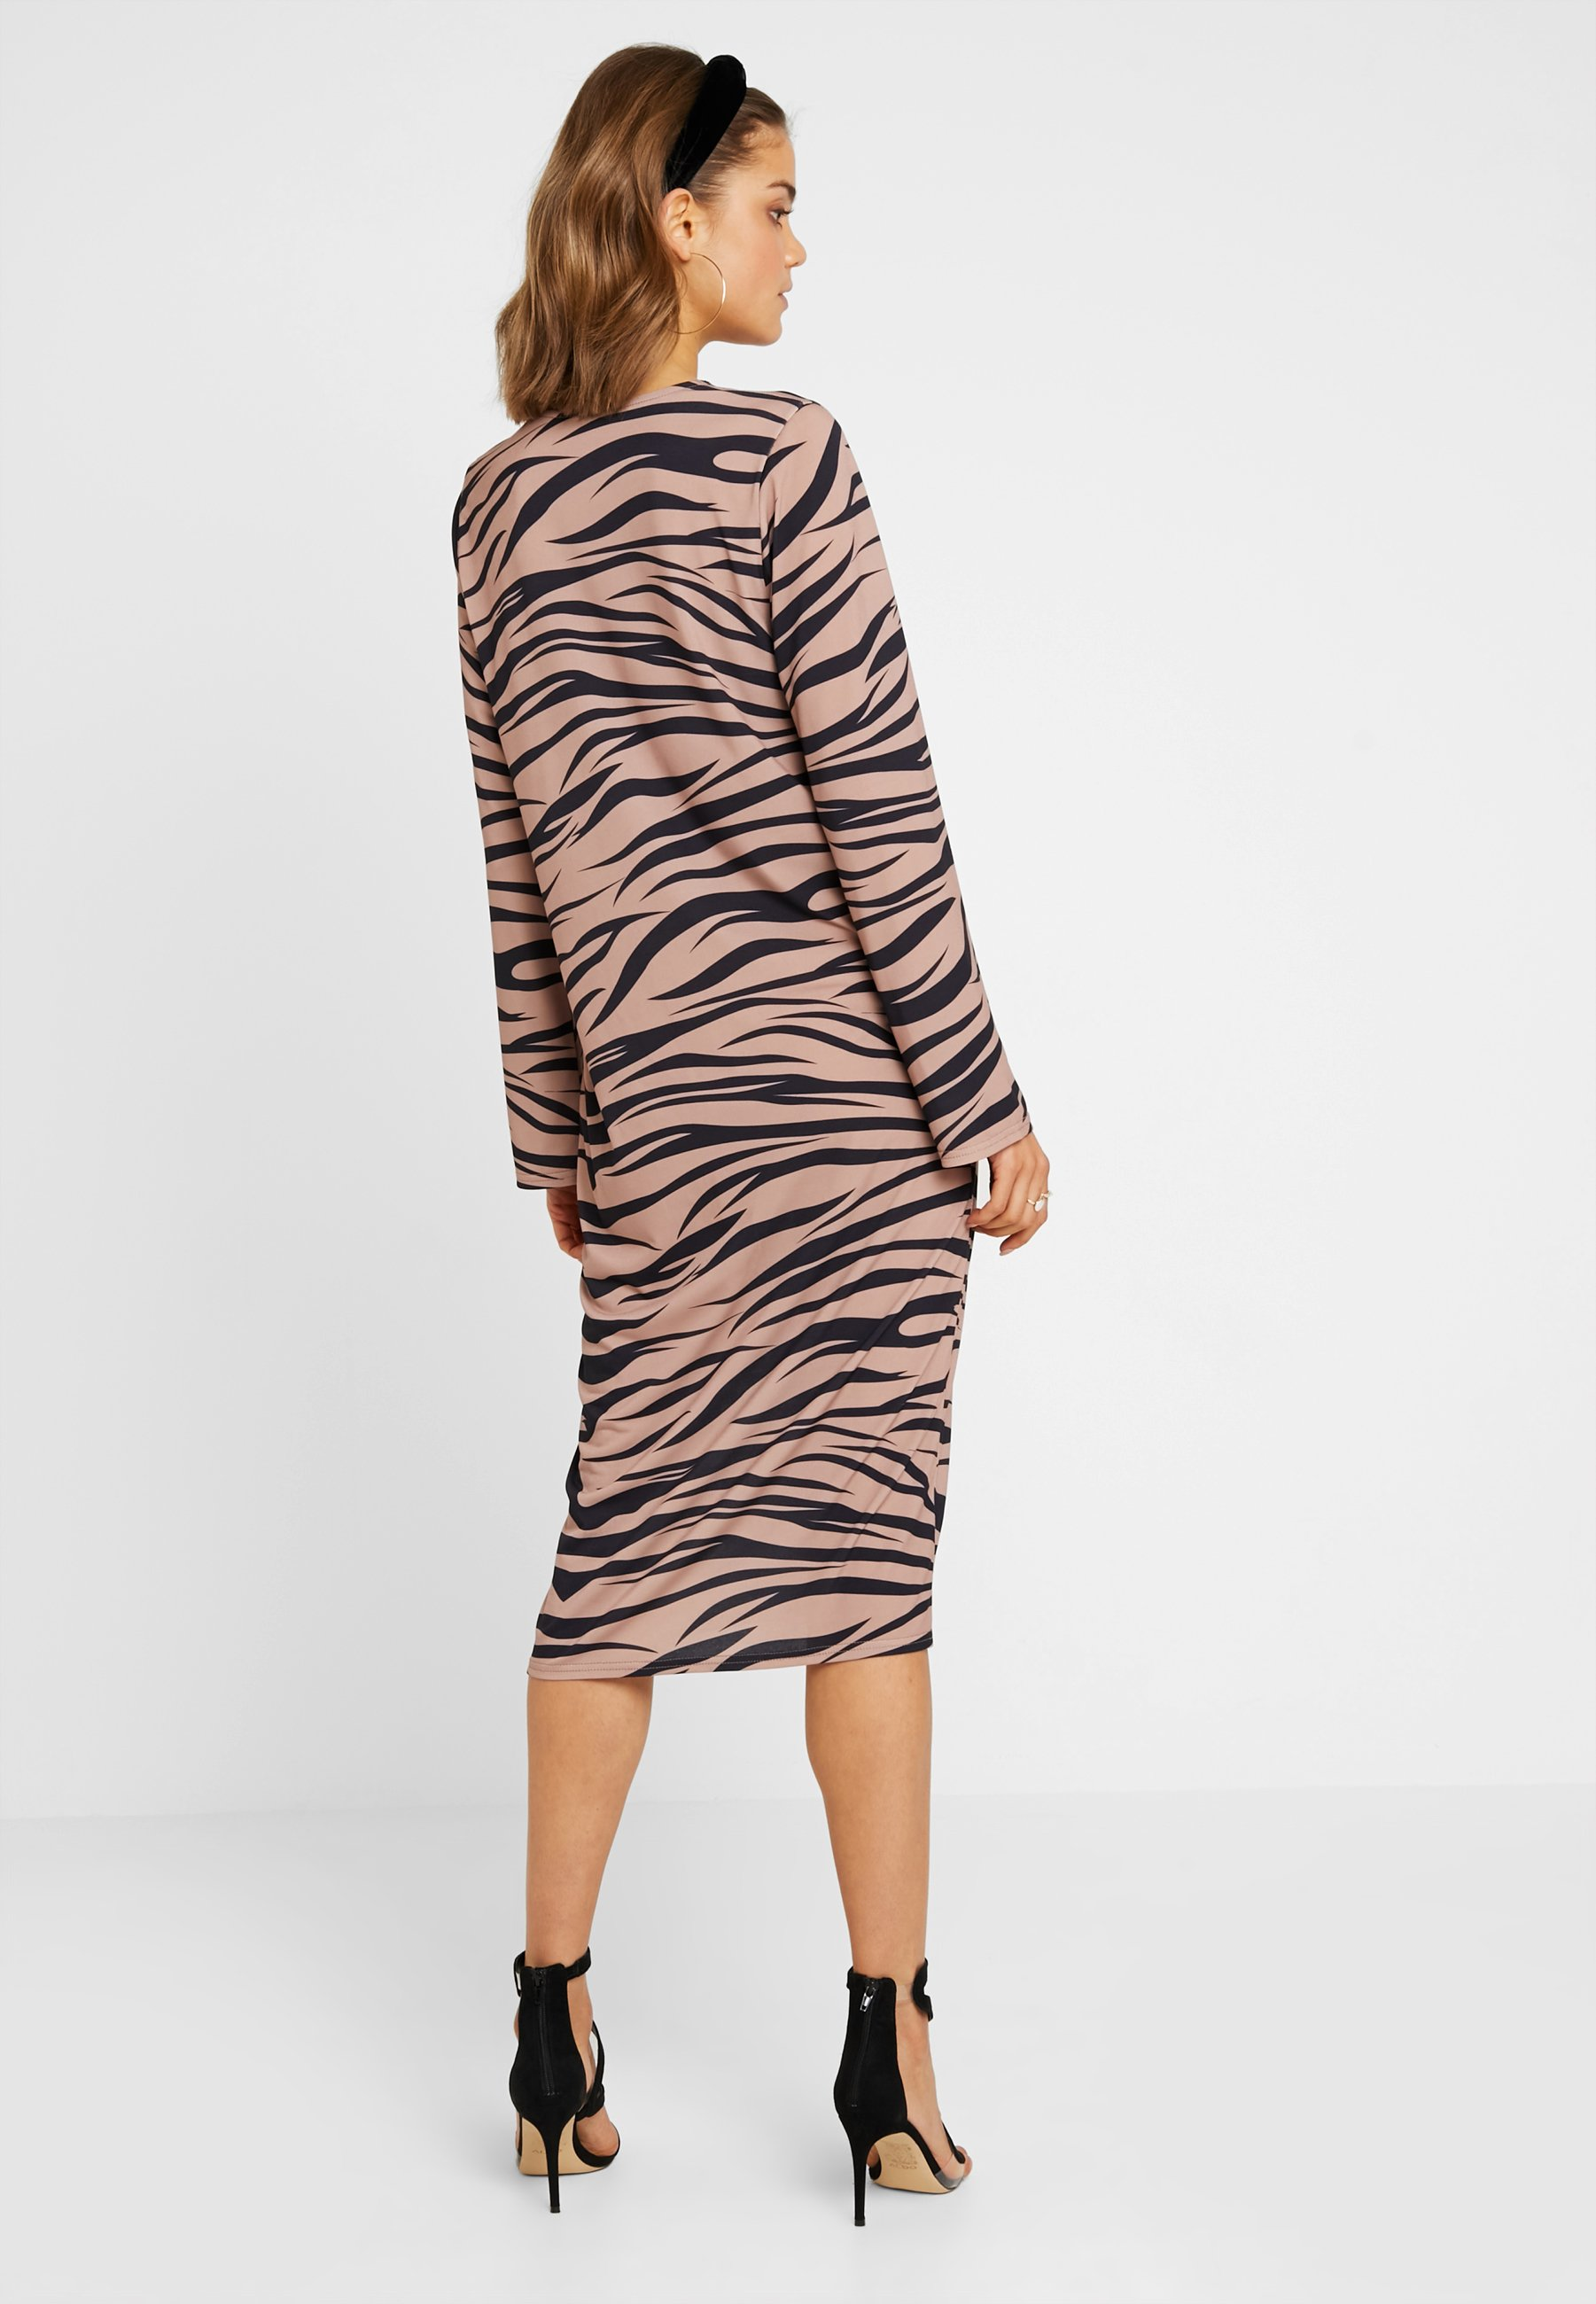 Brown DressRobe Longue Nelly Light Nly By Hope hoCtQxBsrd